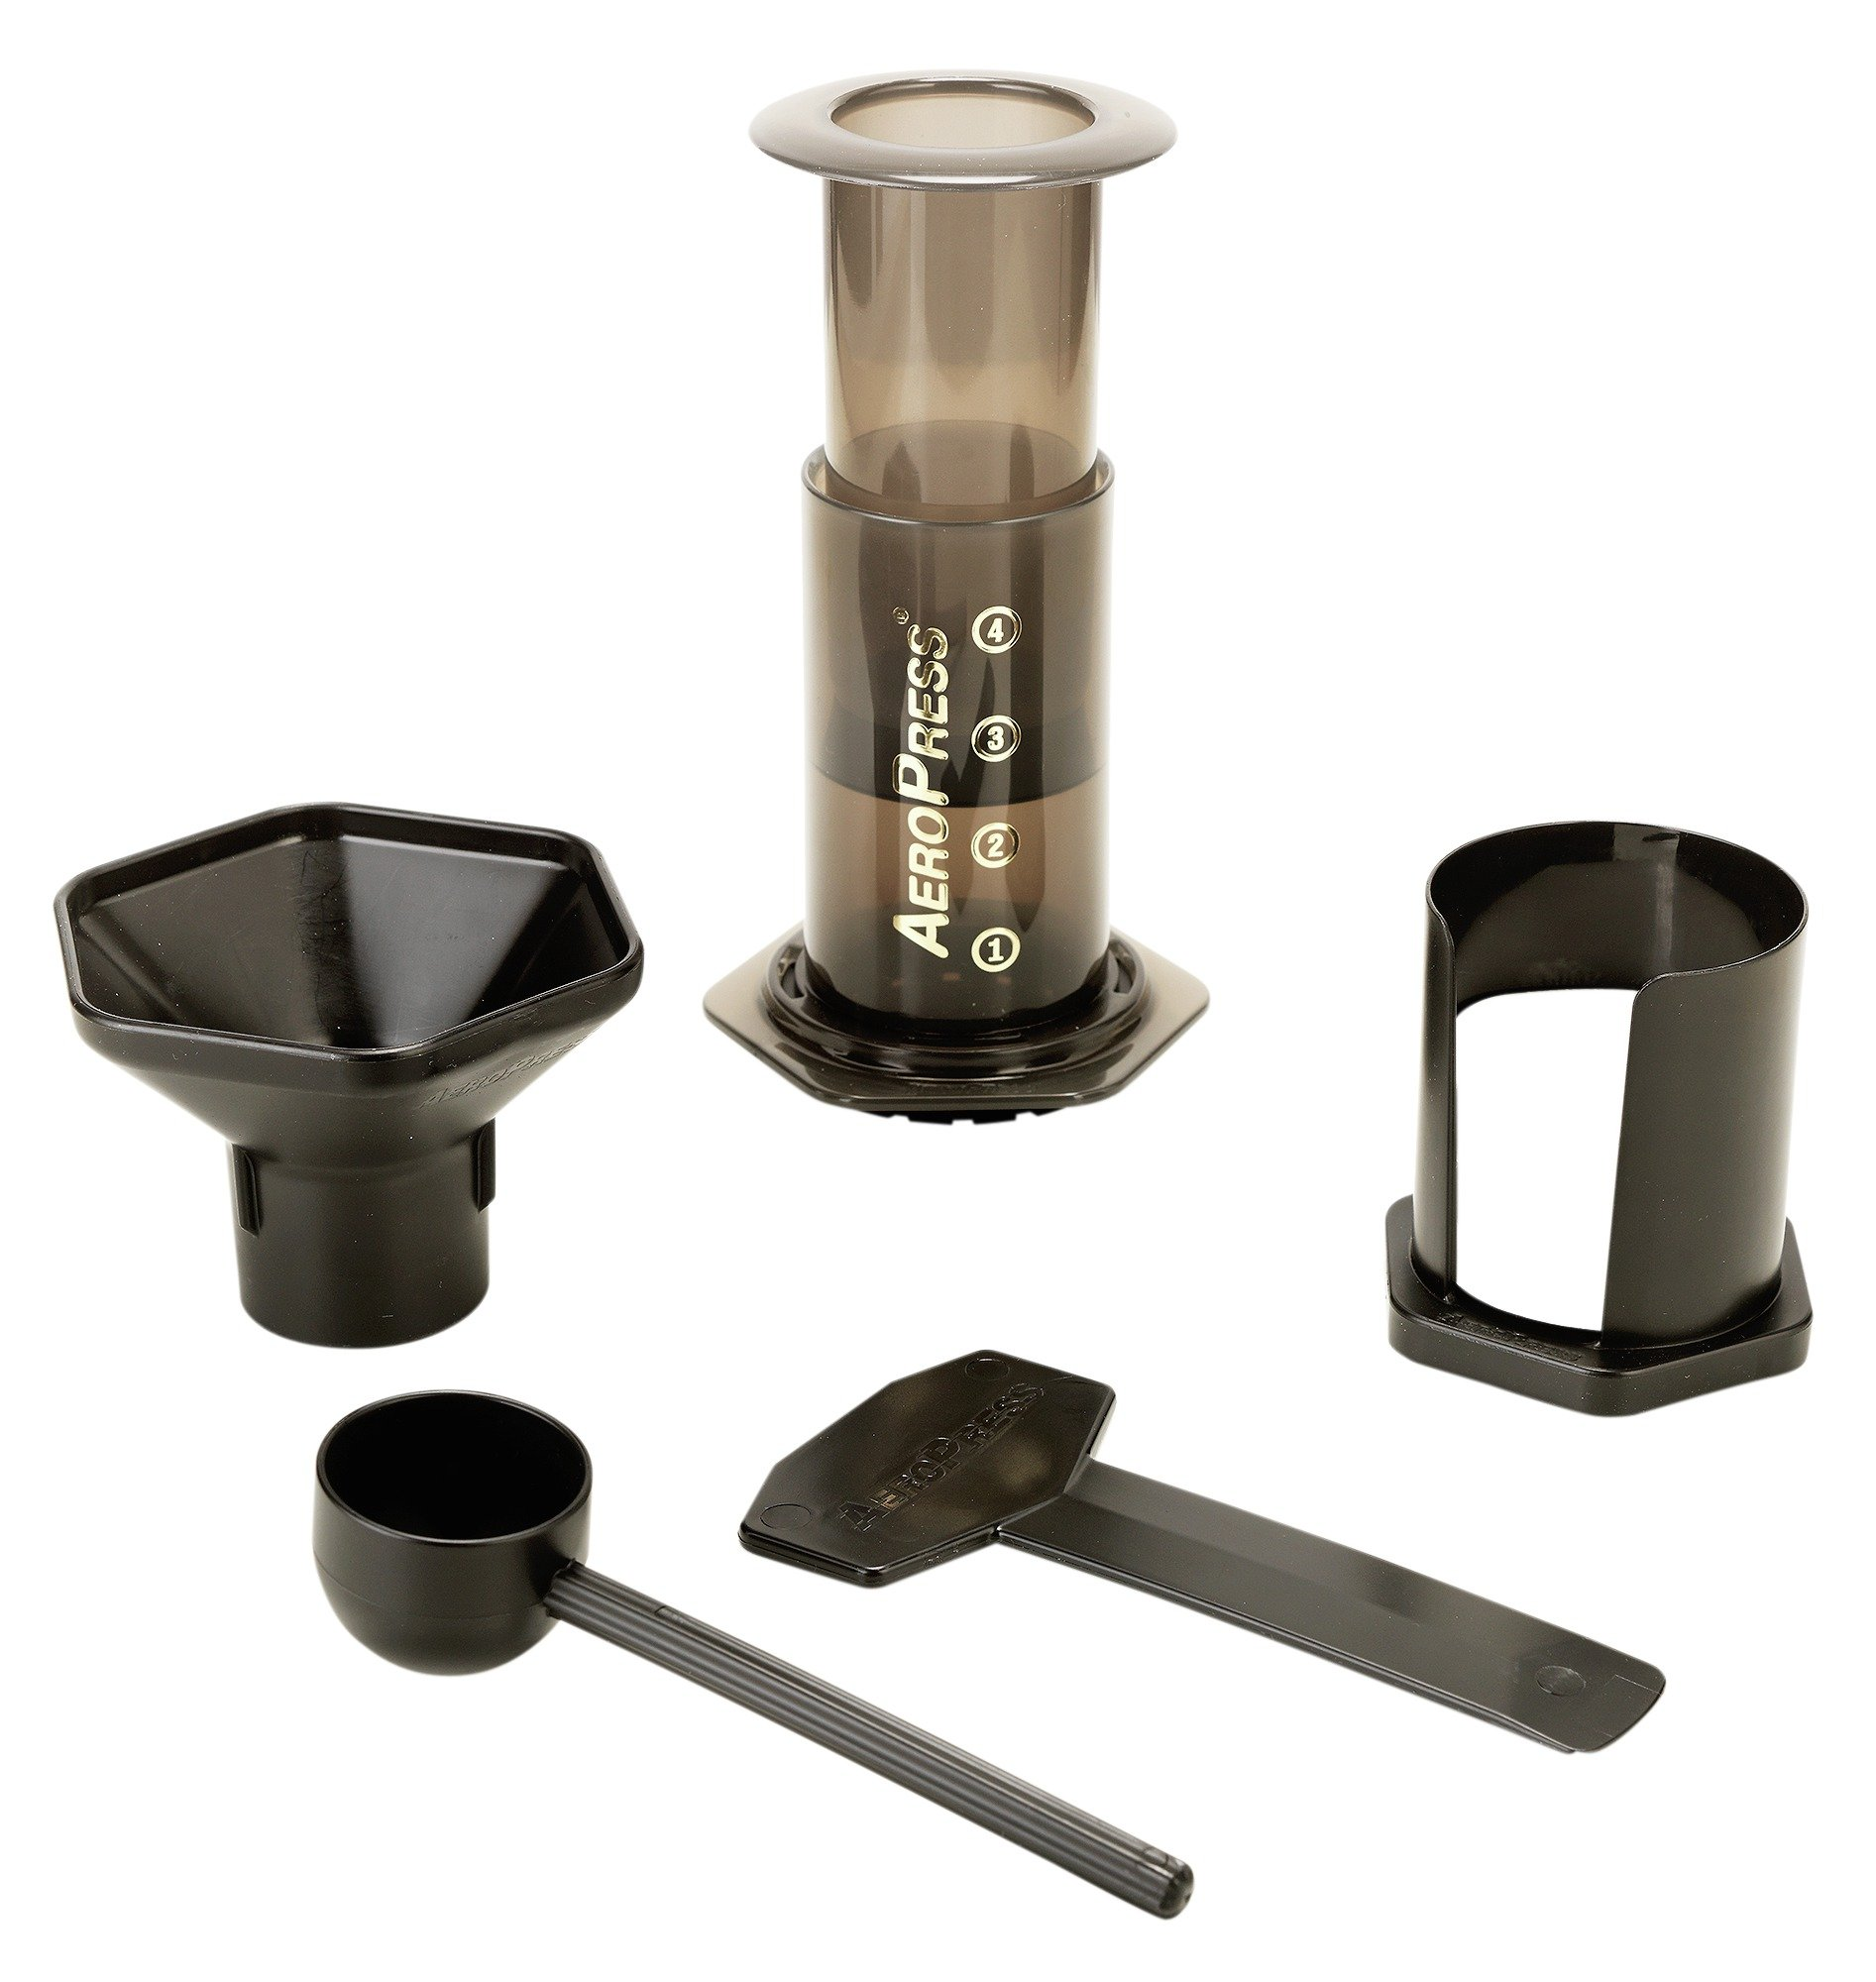 Press Coffee Maker Argos : Aerobie AeroPress Coffee Machine Black